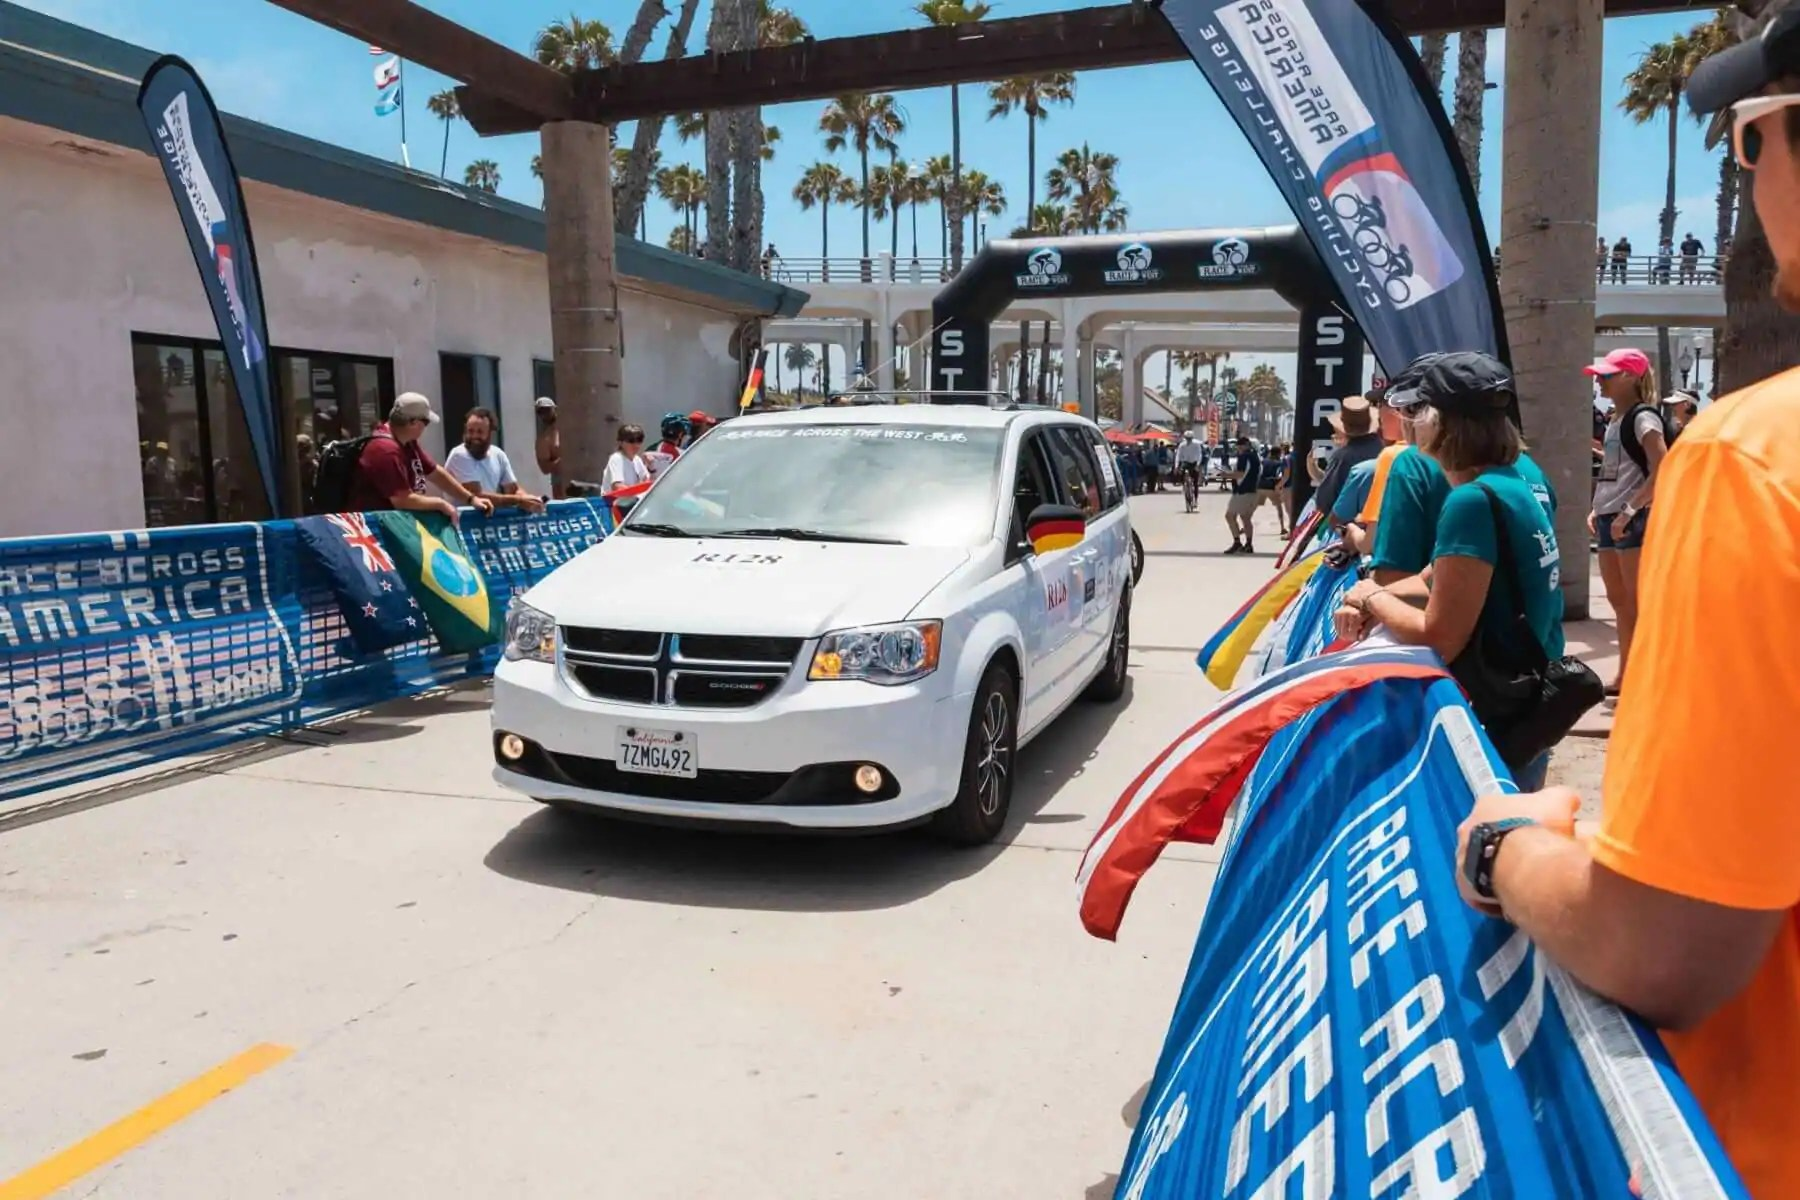 De Raam Of Het Raam Have You Seen The Raam Vans Visit Oceanside